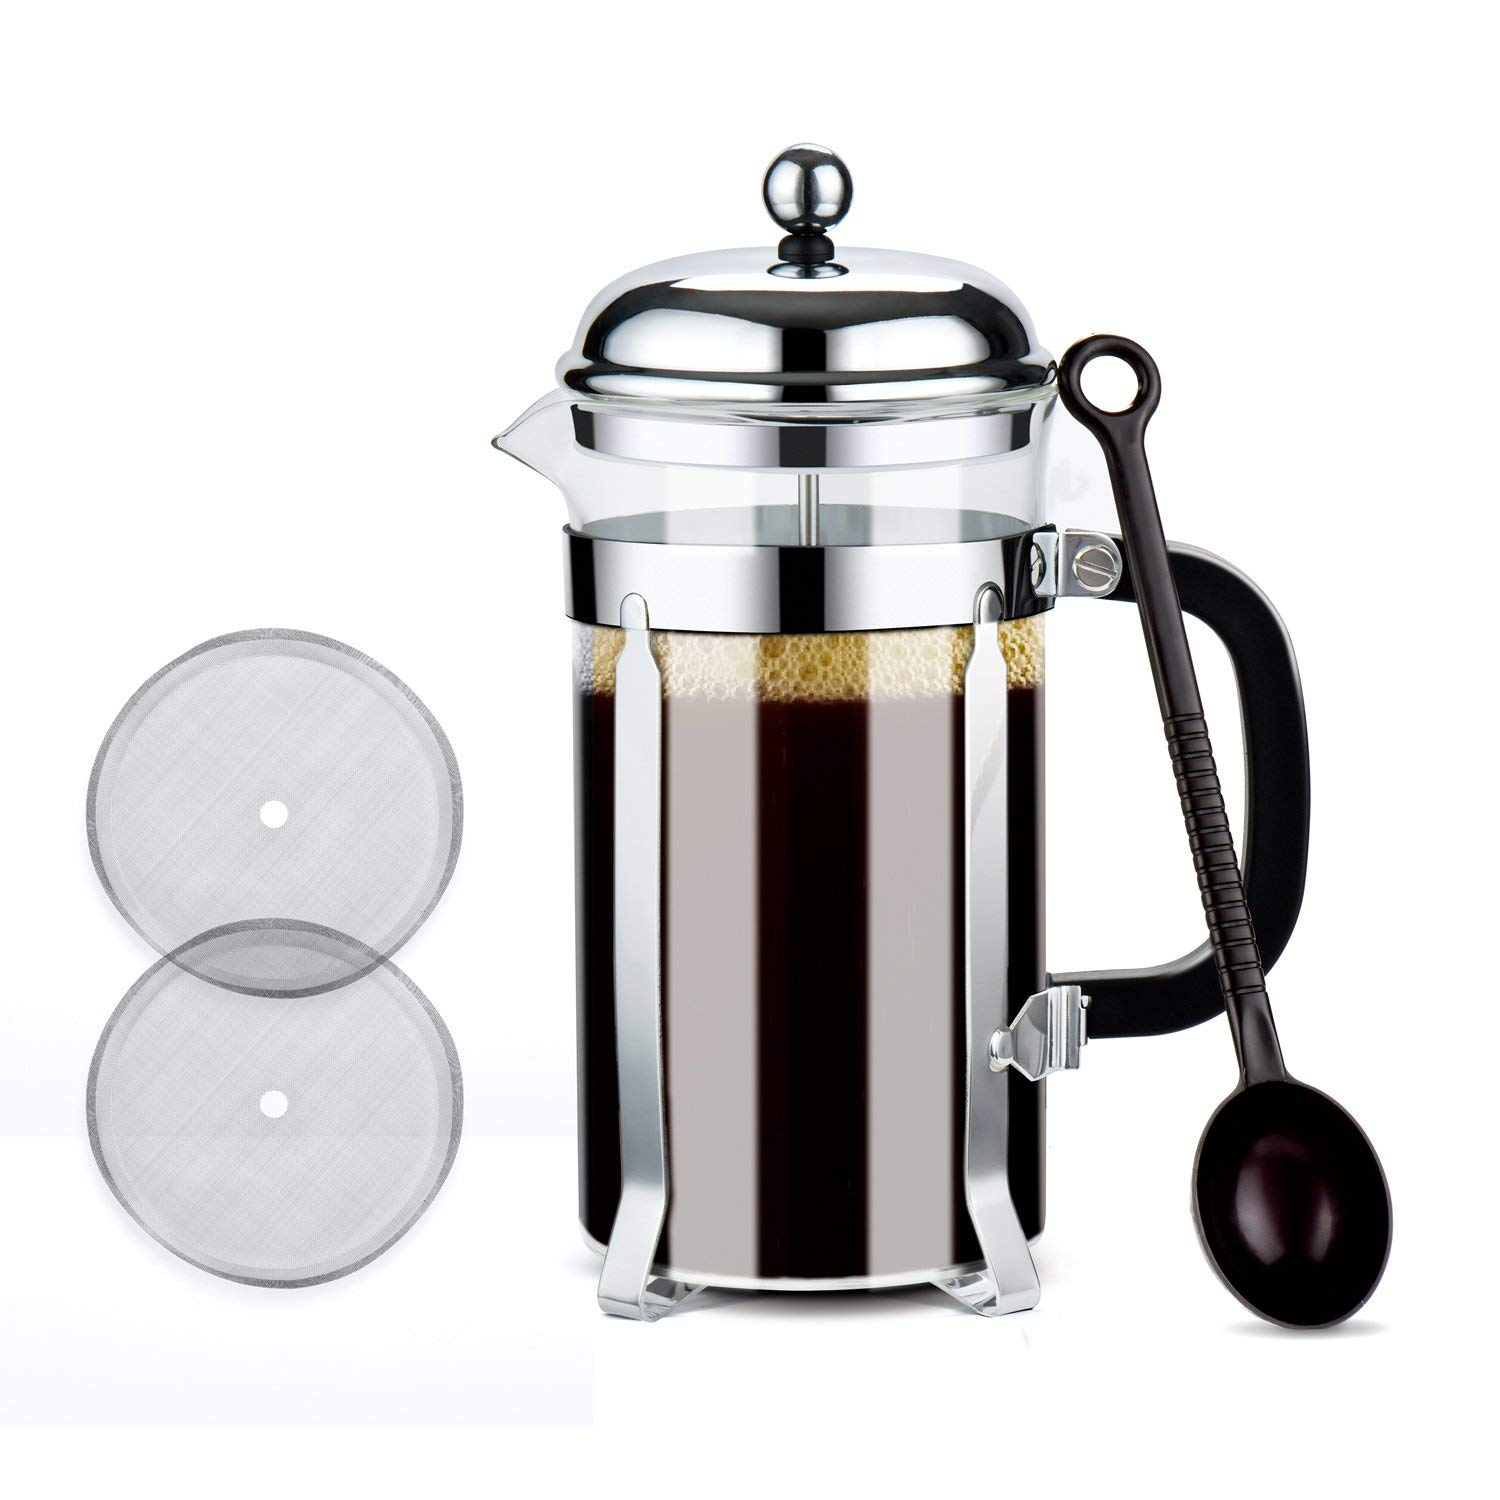 Glotoch Stainless Steel French Press Coffee & Tea Maker(8 cup, 34 oz), Glass French Press Coffee & Tea Pot for Coffee/Tea/ Camping/Office (Silver, Round Roof)